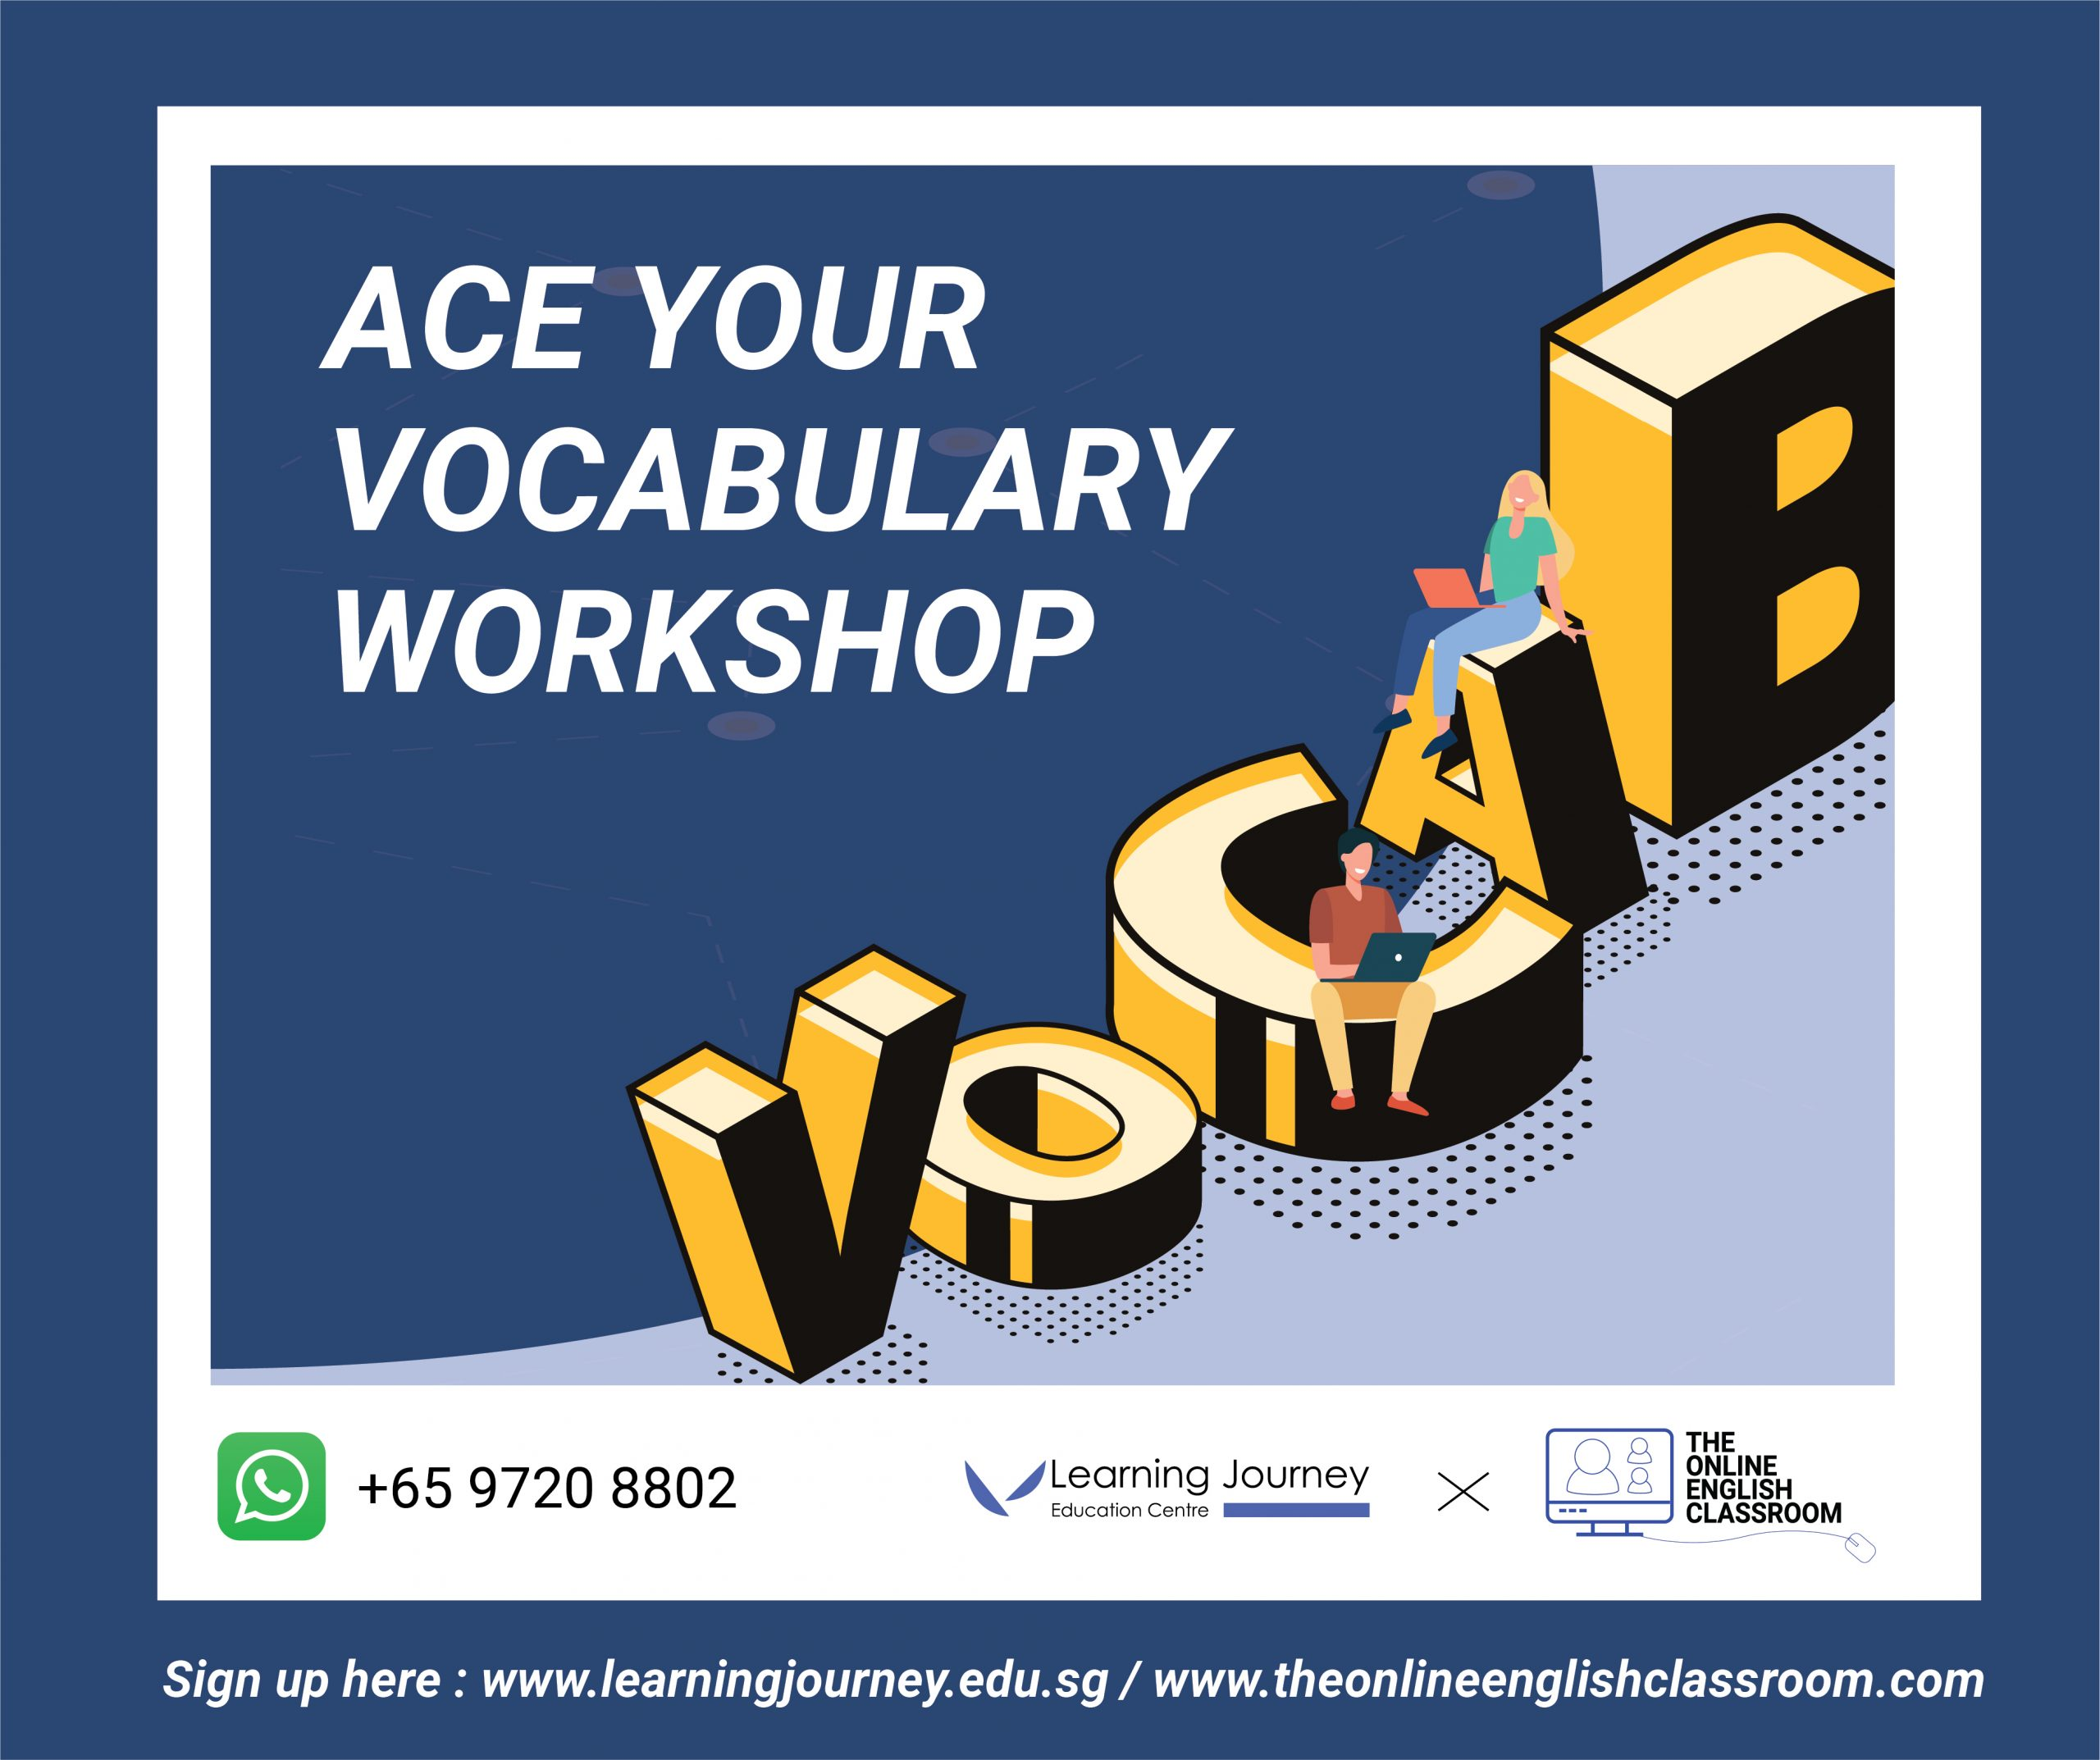 Holiday classes package Sec_ACE YOUR VOCABULARY WORKSHOP--the-online-english-classroom